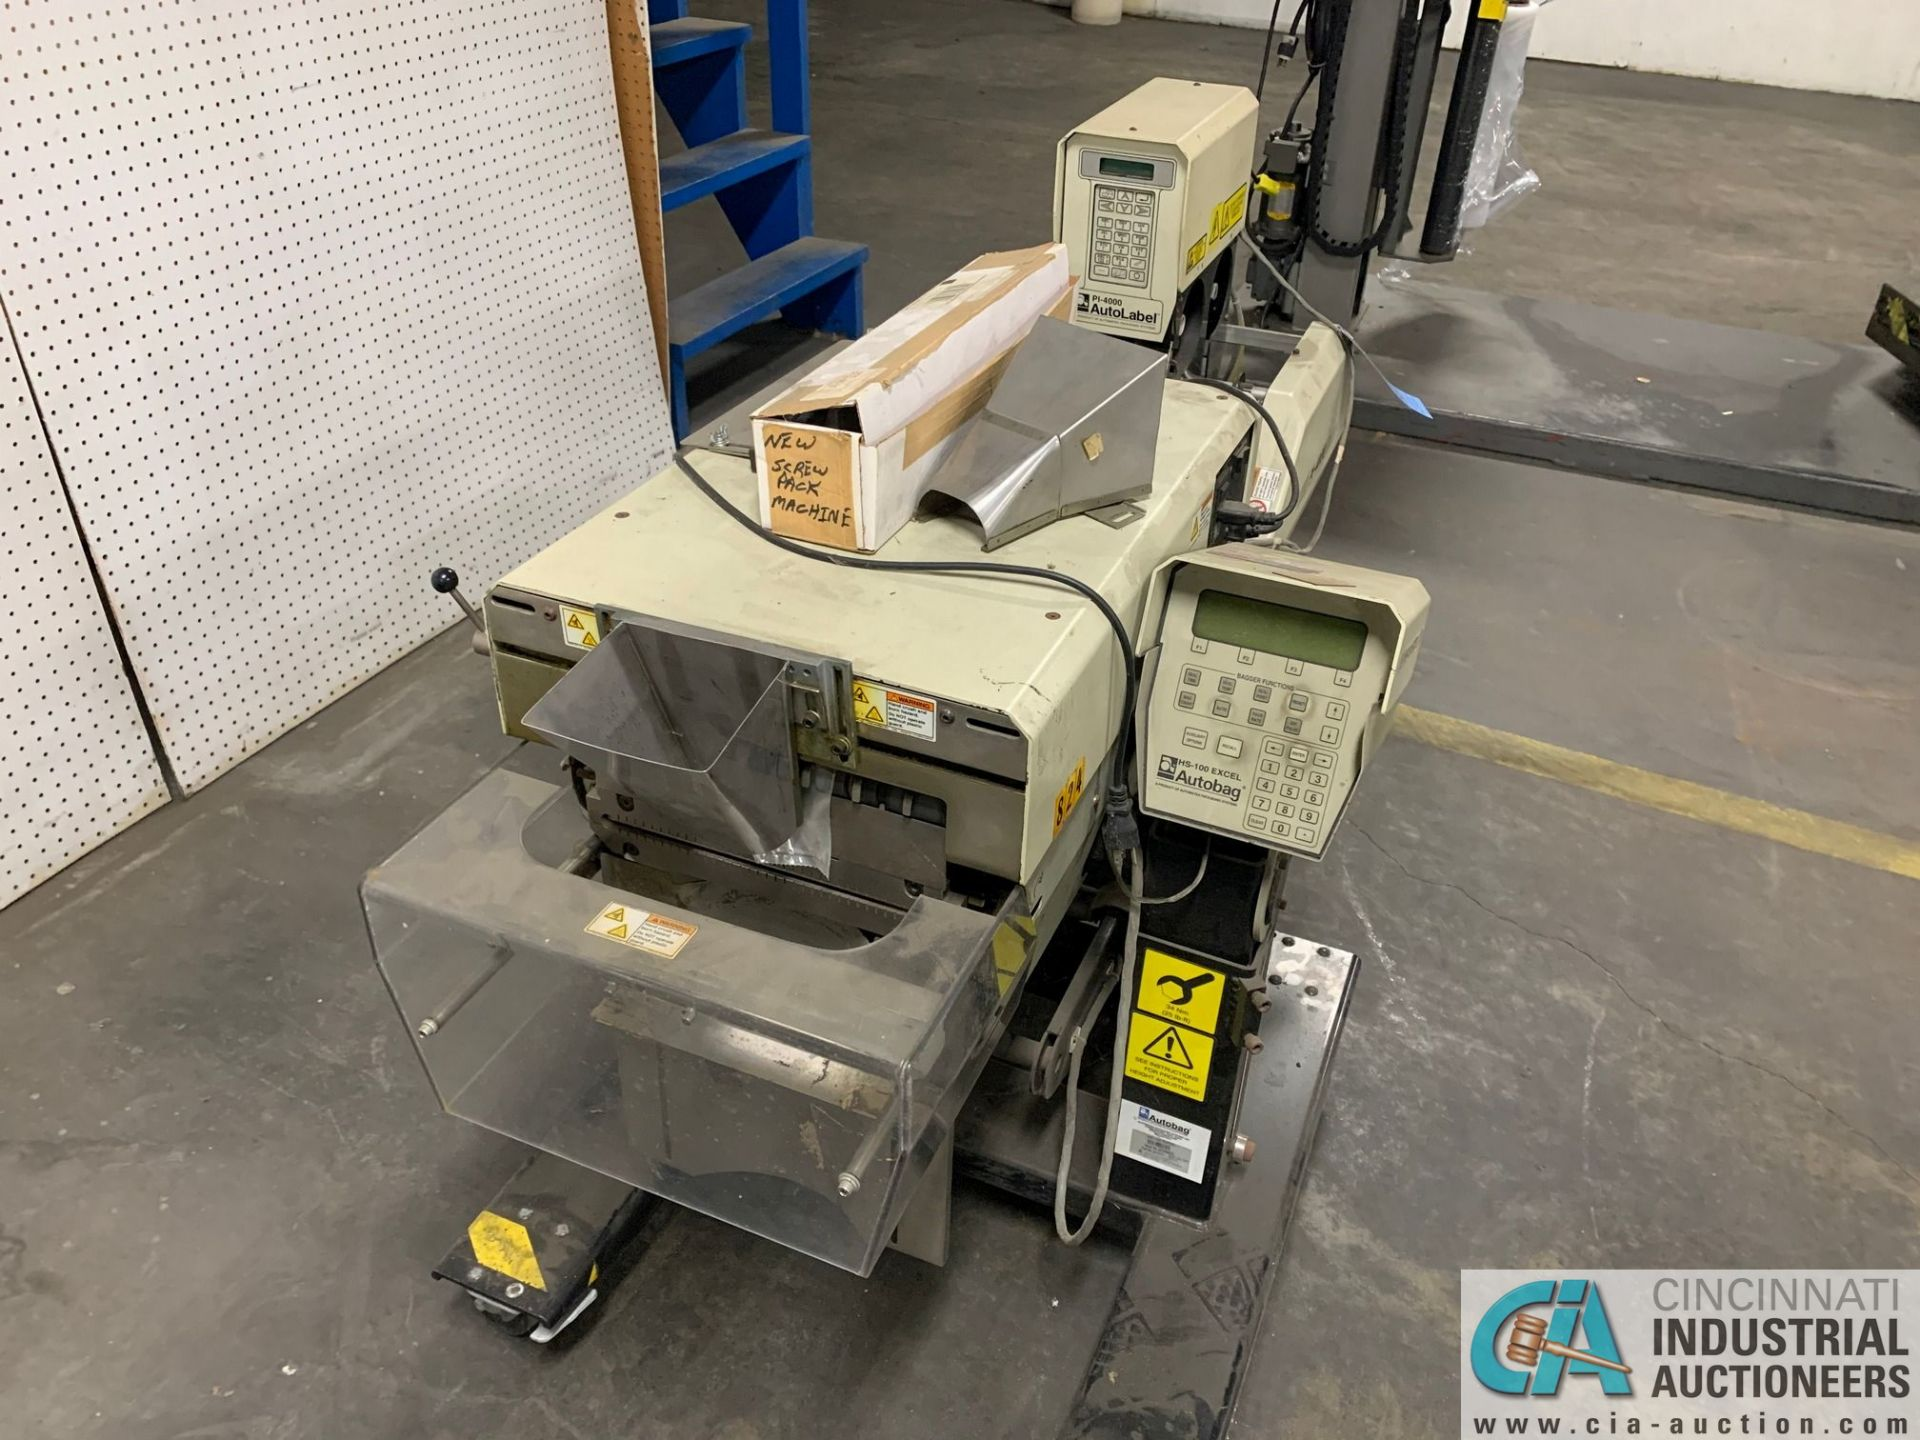 AUTOBAG MODEL HS-100 EXCEL POLY BAGGING MACHINE; S/N 2072896019, WITH P1-4000 AUTO LABEL MACHINE ( - Image 2 of 7